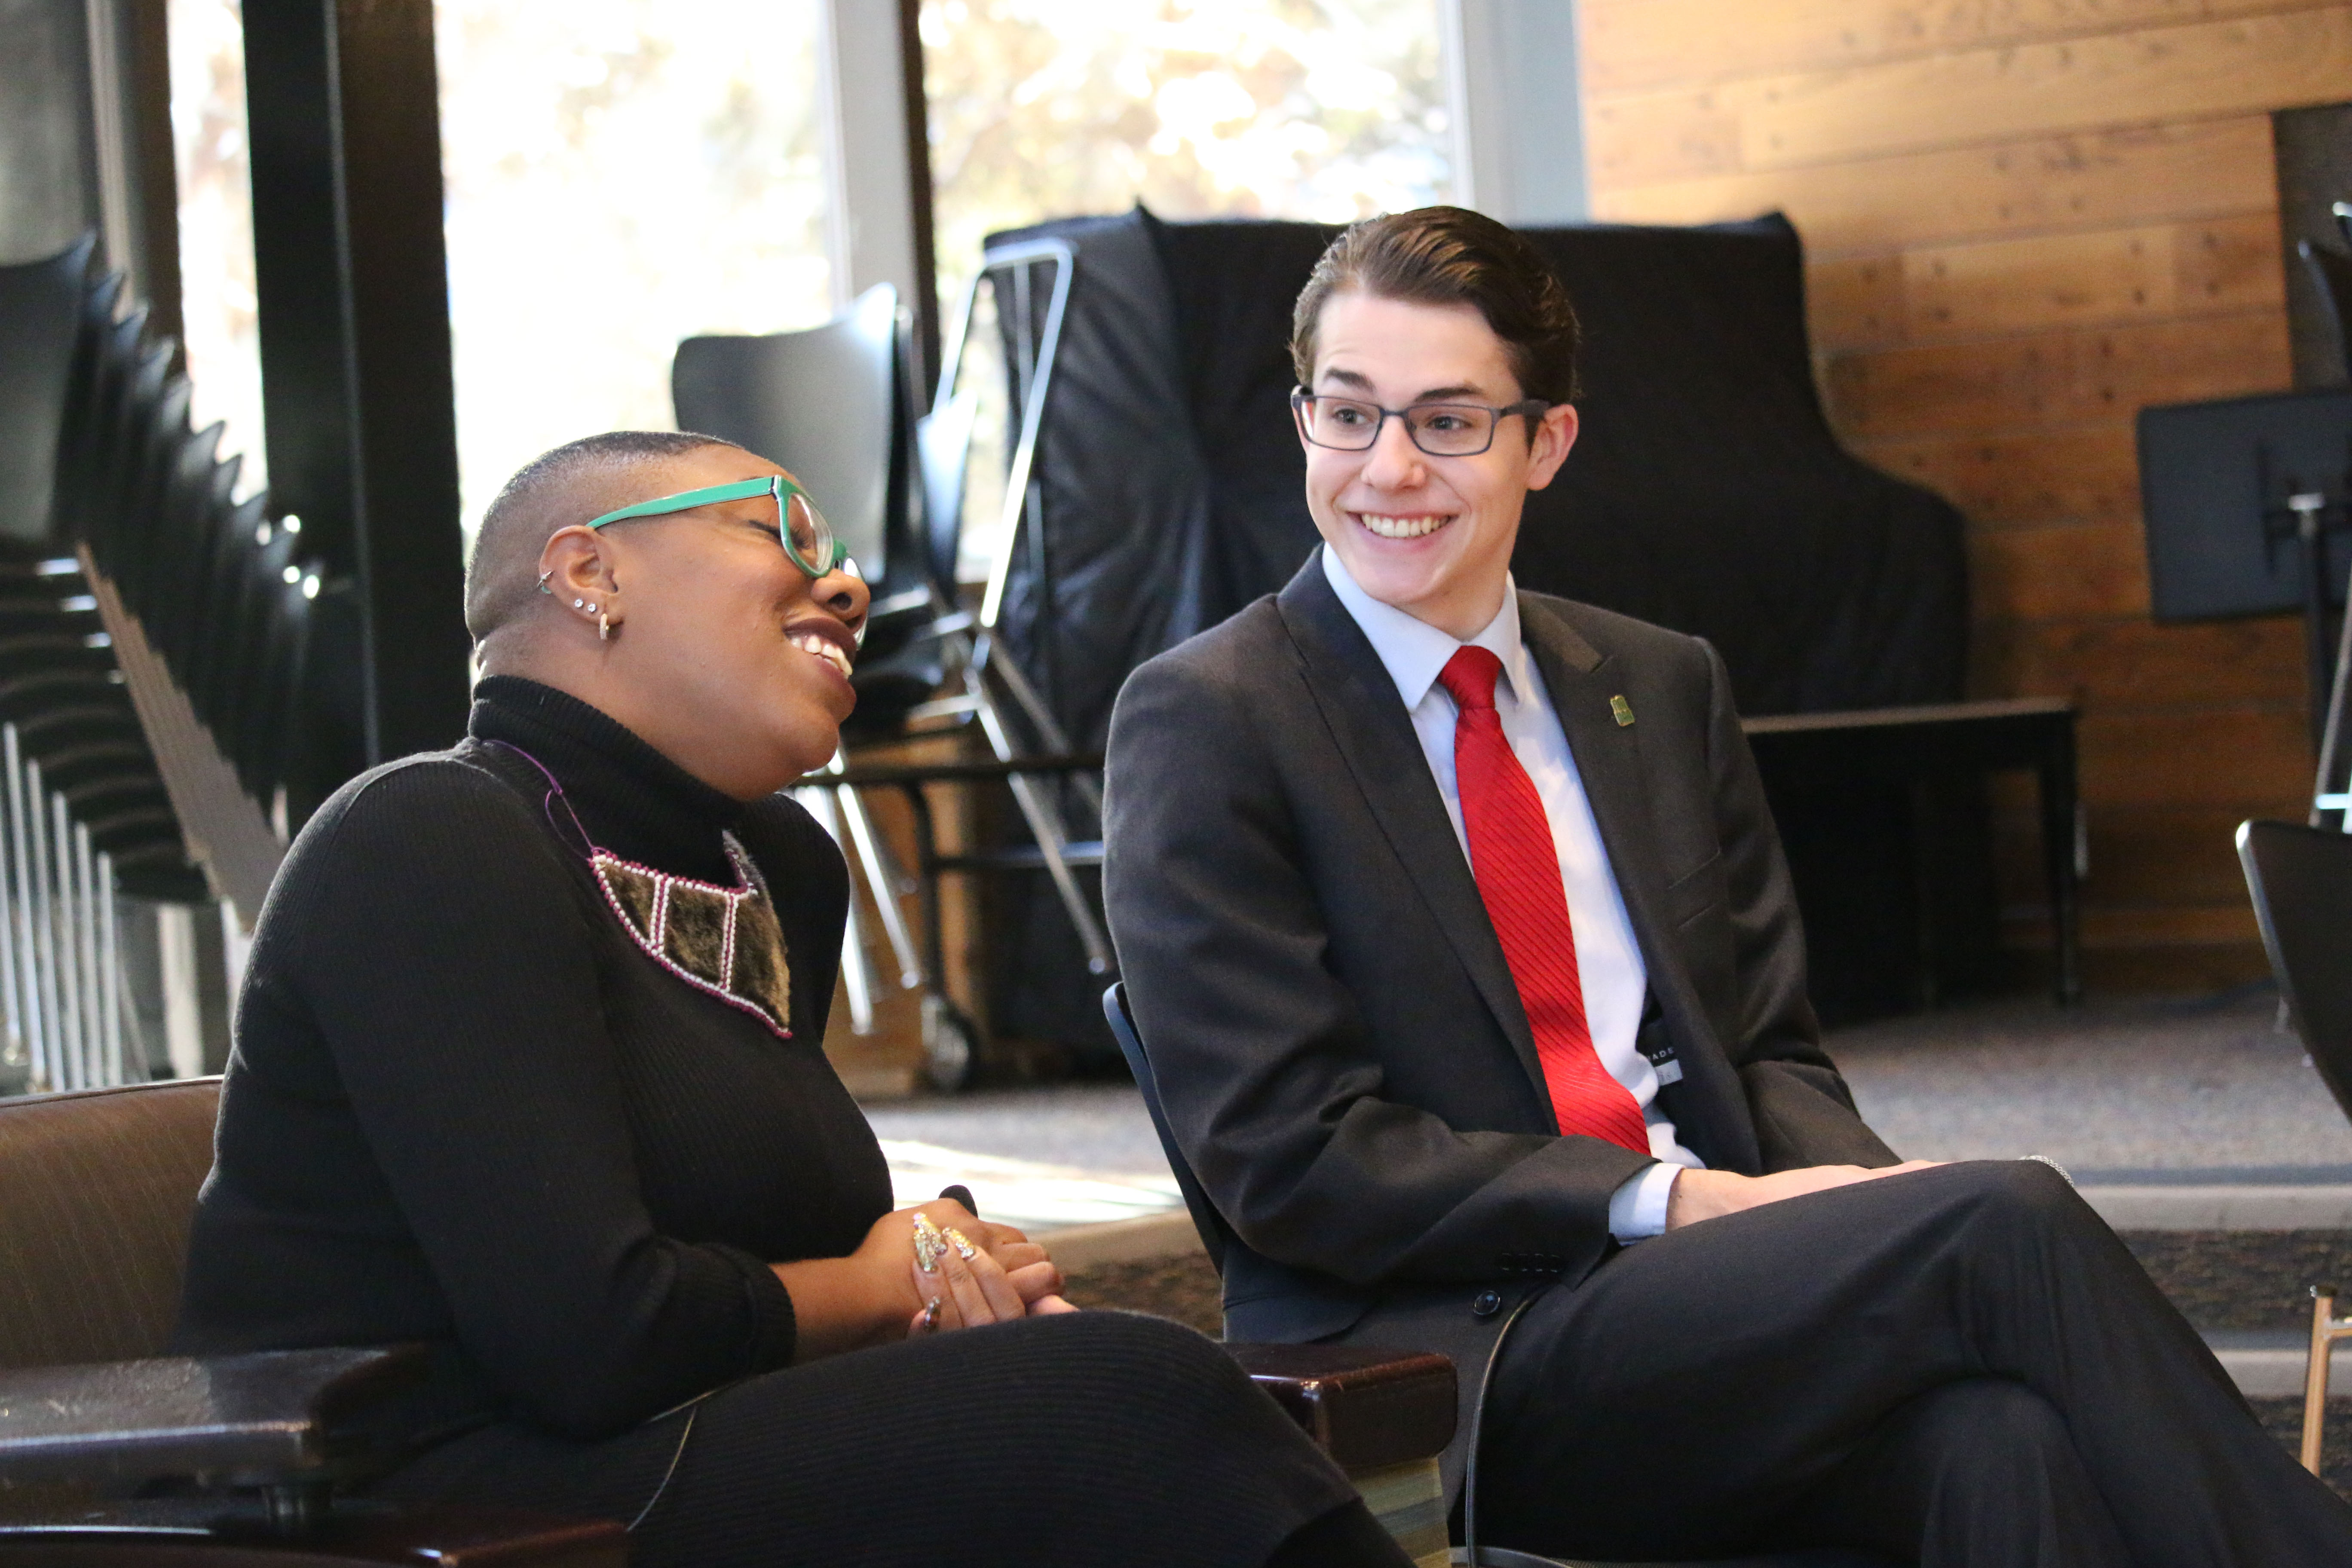 Alec Burris and Symone Sanders